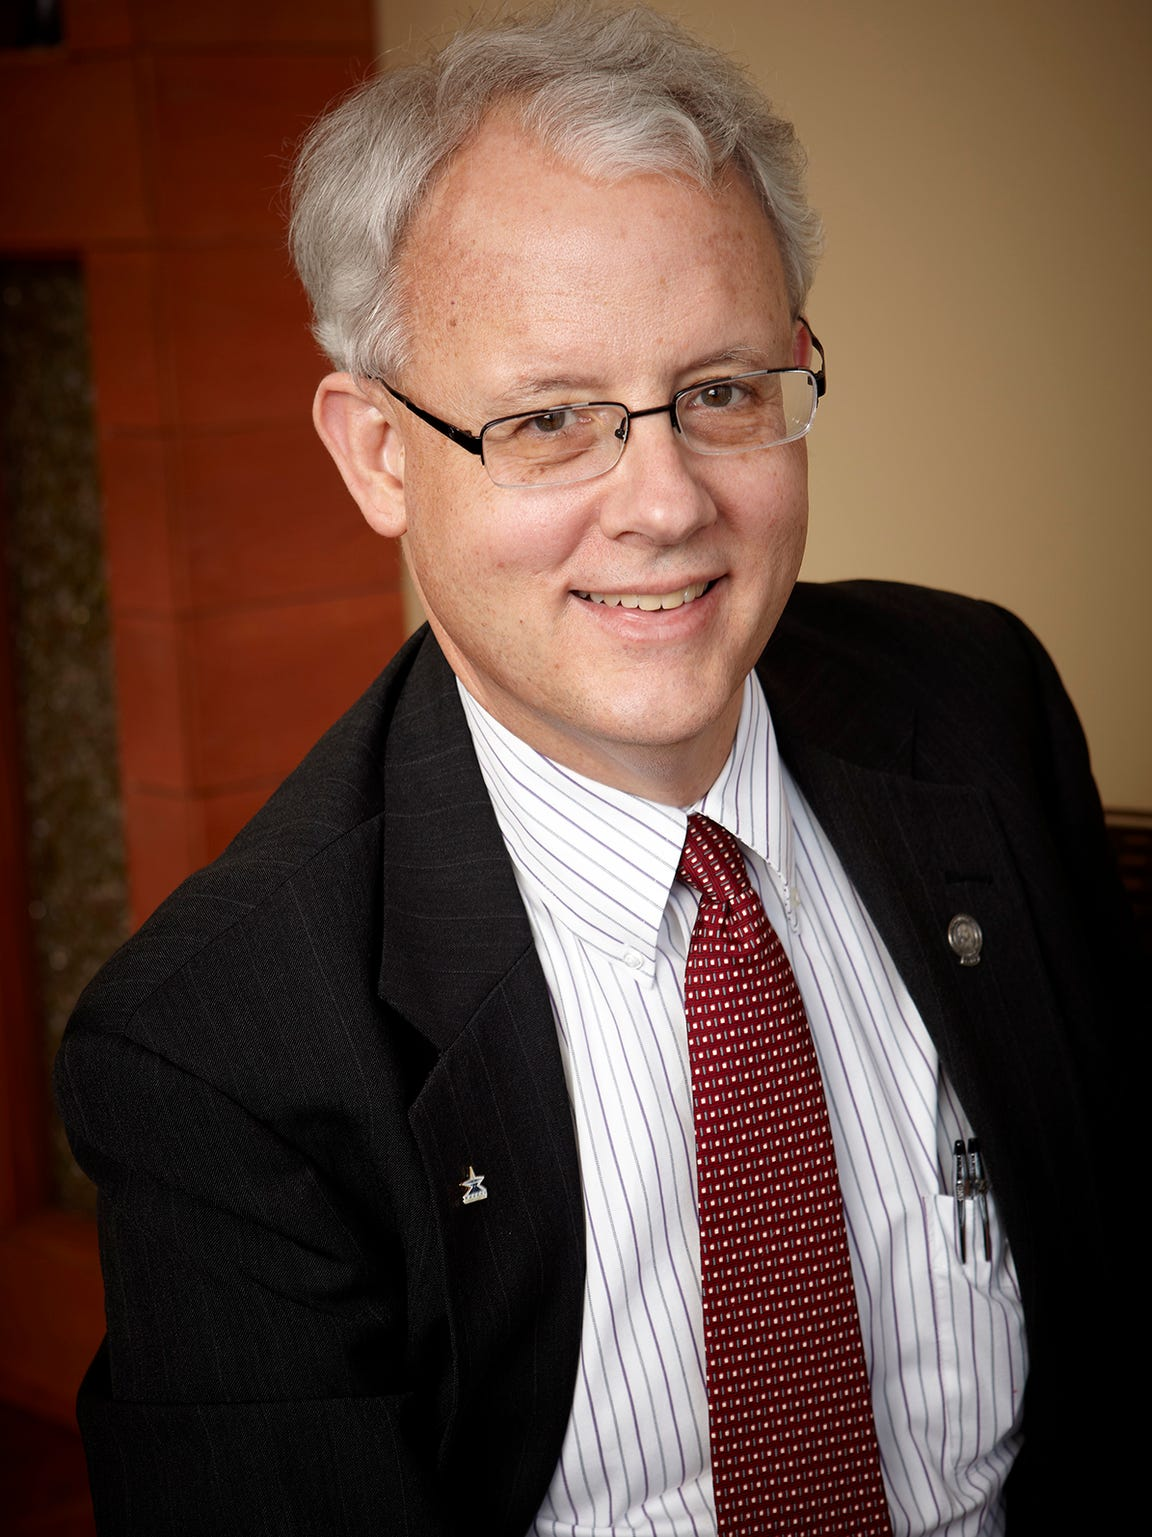 Dr. Michael Miller, past president of the American